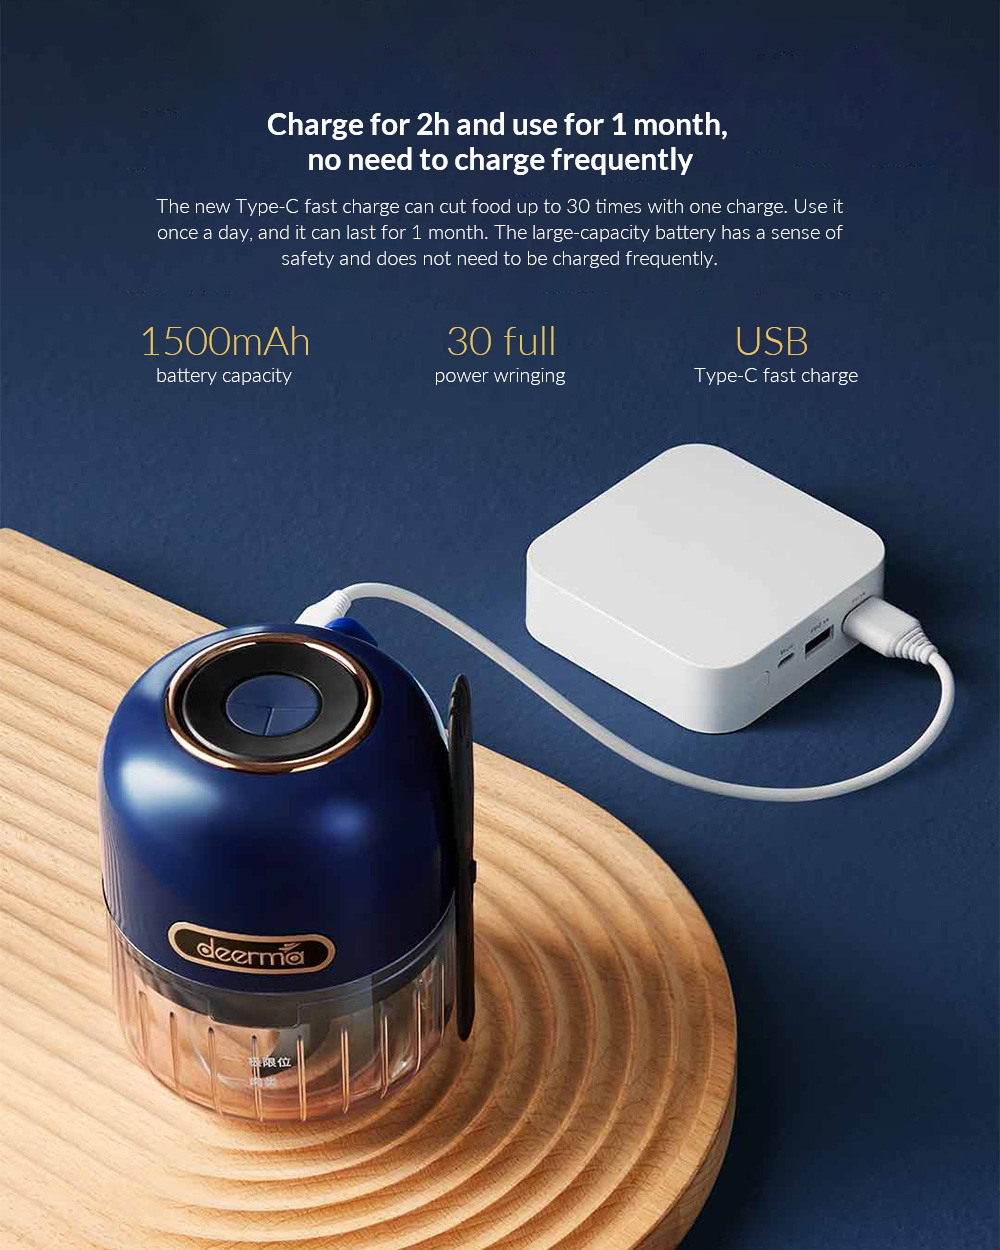 Deerma JS200 Wireless Portable Food Processor Charge for 2h and use for 1 month, no need to charge frequently